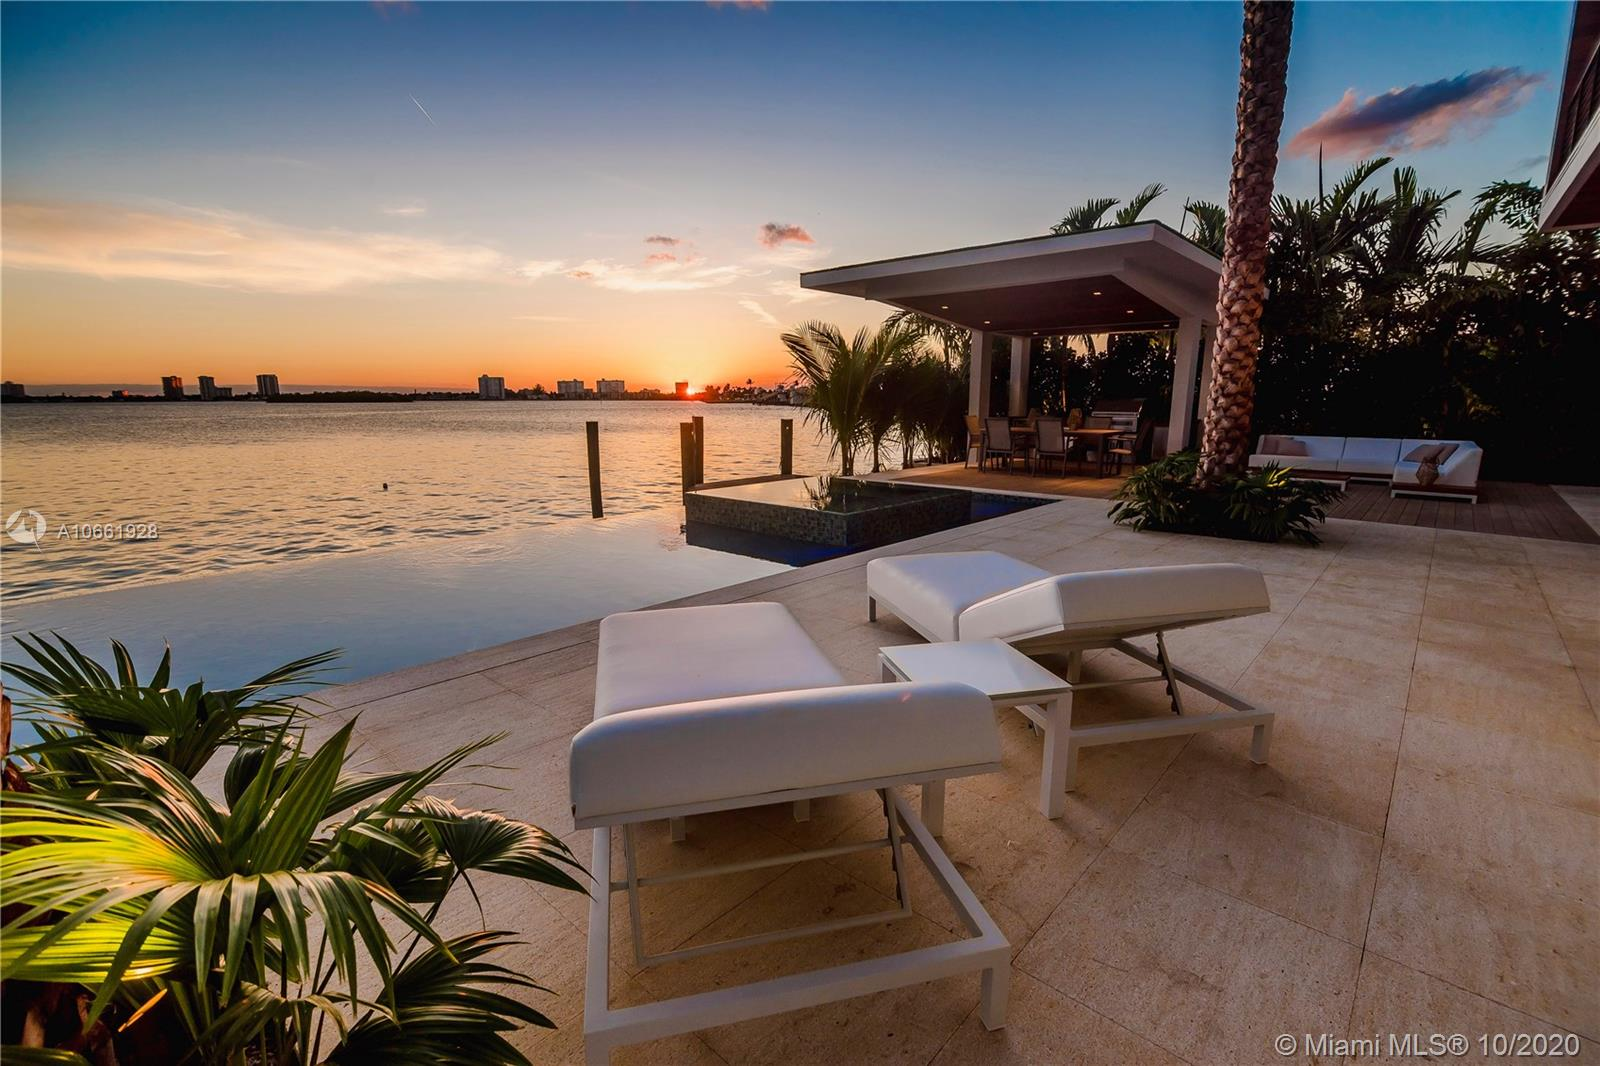 Dream waterfront mansion offering incredible water views, endless sunsets, and views of Indian Creek Island! The perfect balance of oversized glass with exposed concrete creates a striking contemporary appeal, while the interiors are warmed with different tones of wood finishes. The oversized living areas are introduced with a large foyer room leading to an interior garden, a formal dining, and a waterfront living room with an open kitchen plus a chef's kitchen concealed with frameless doors! Huge upper family room, sauna, & a master taking the entire waterfront side of the home. Exceptional outdoors, infinity pool, spa, summer kitchen, 2-car garage, rooftop ready! Minutes away to Bal Harbour shops! Created by the vision & dedication to perfection of Gamma Construction & CBDesign Team.